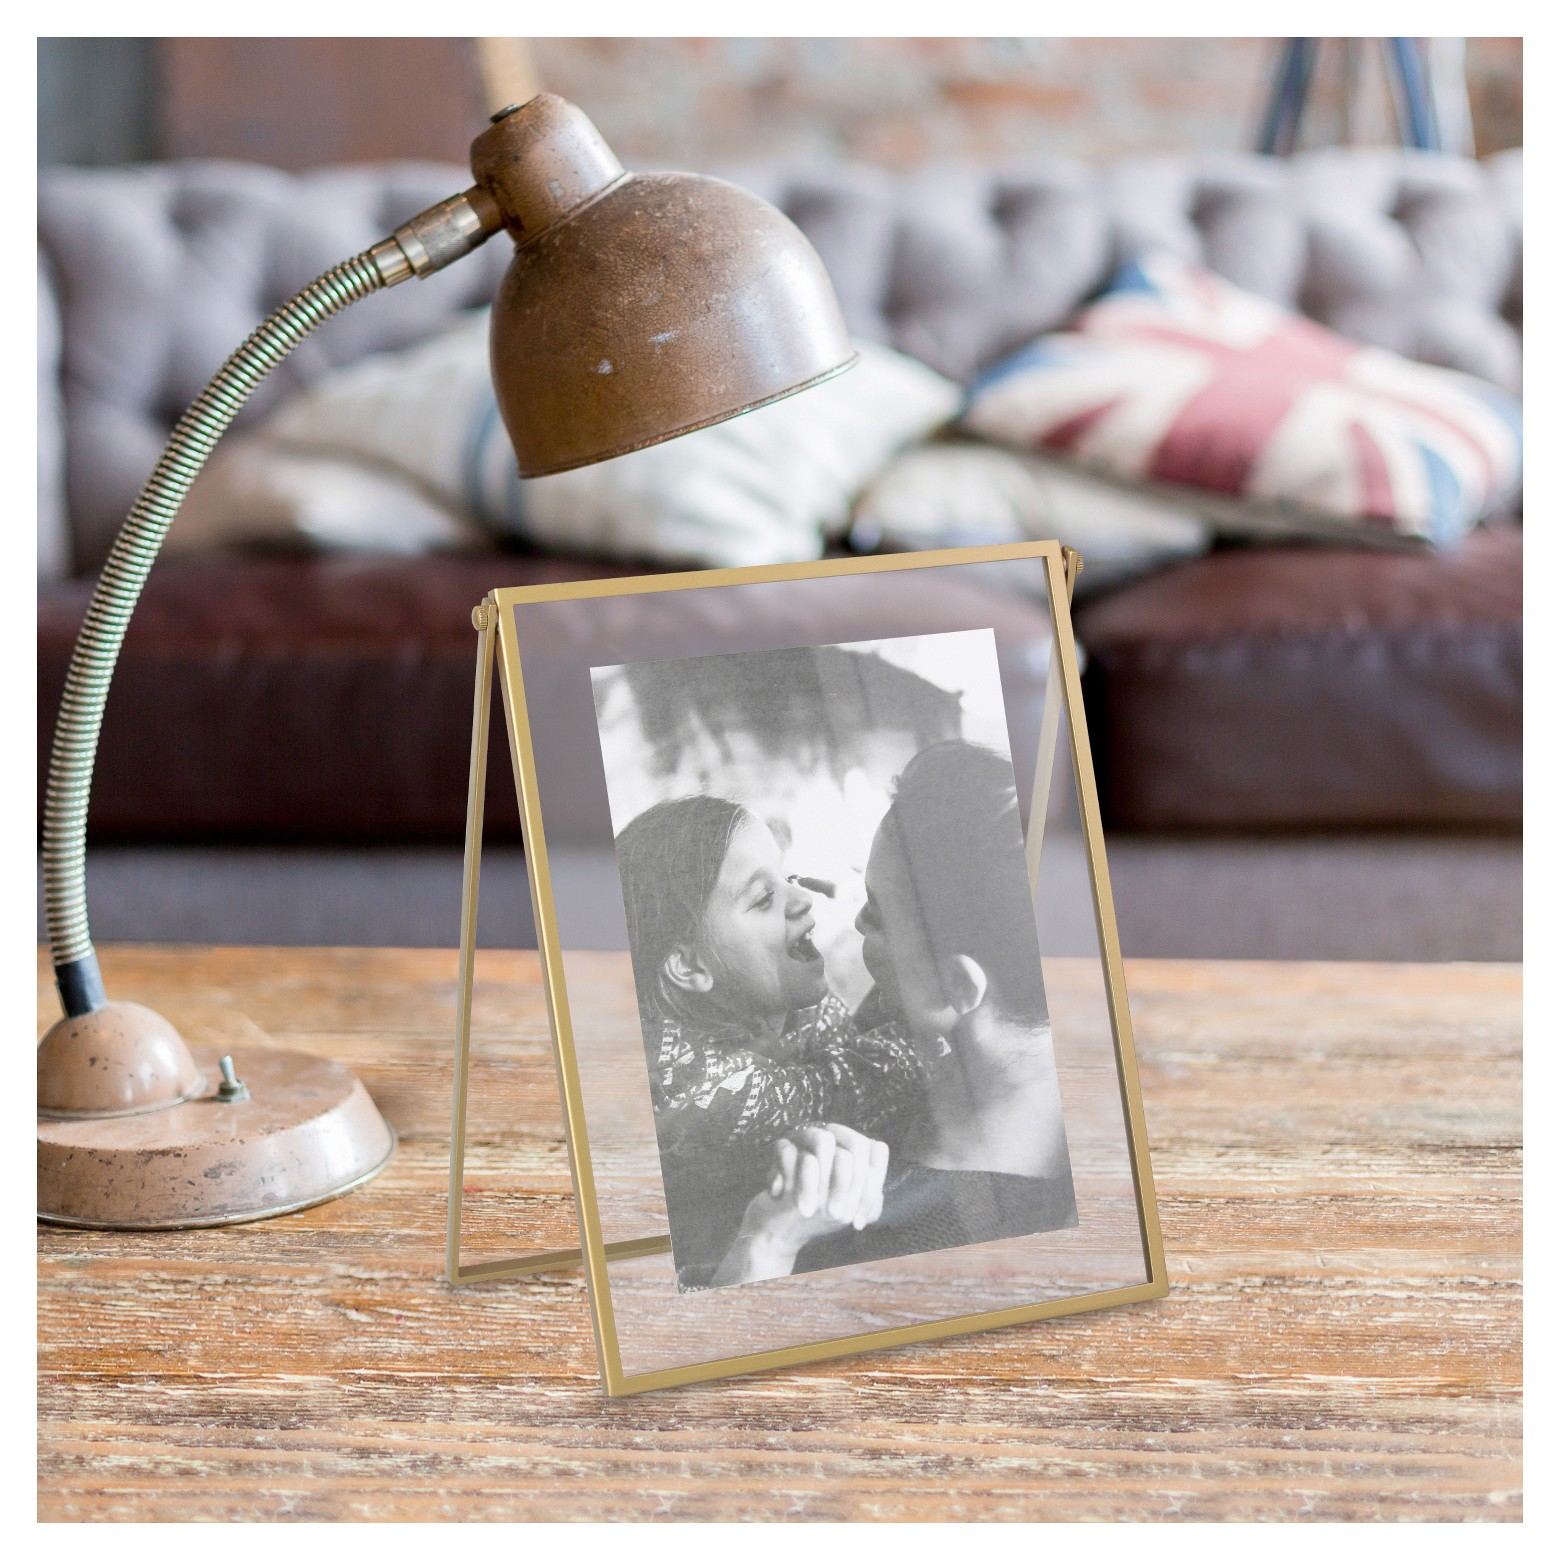 Brass flighting frame on wood surface with lamp